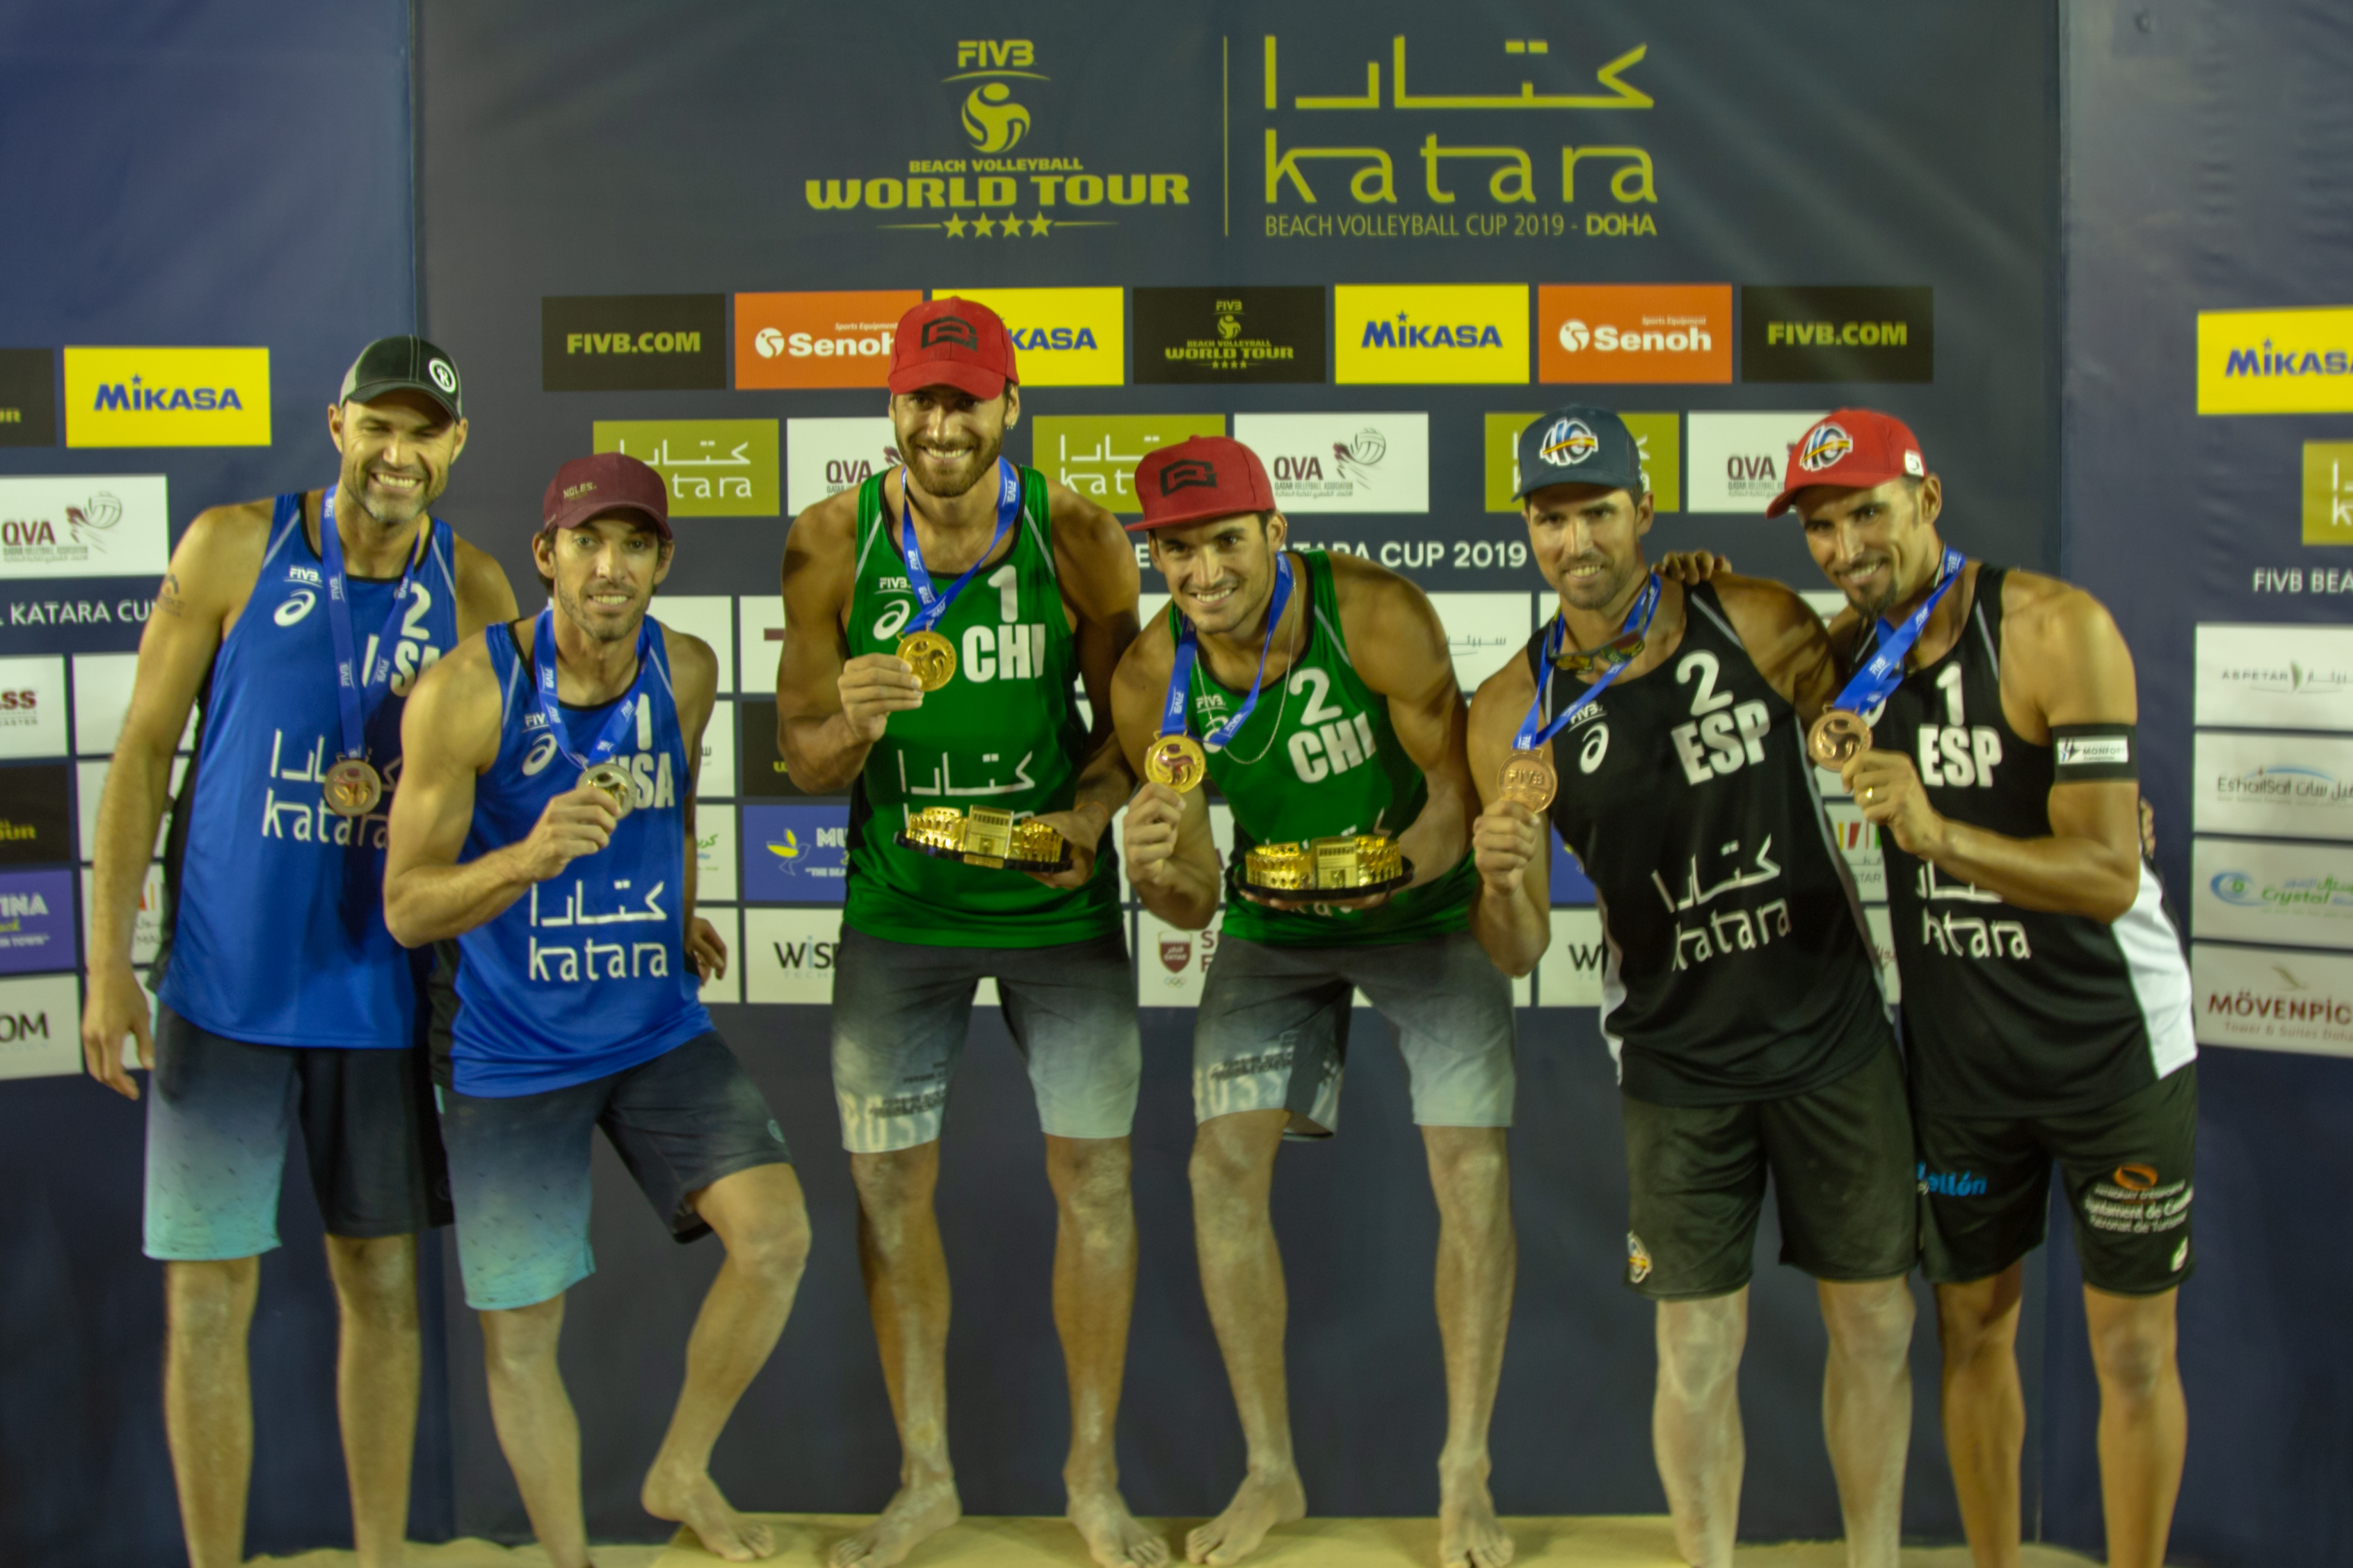 News - FIVB World Tour returns to SE Asia for next month